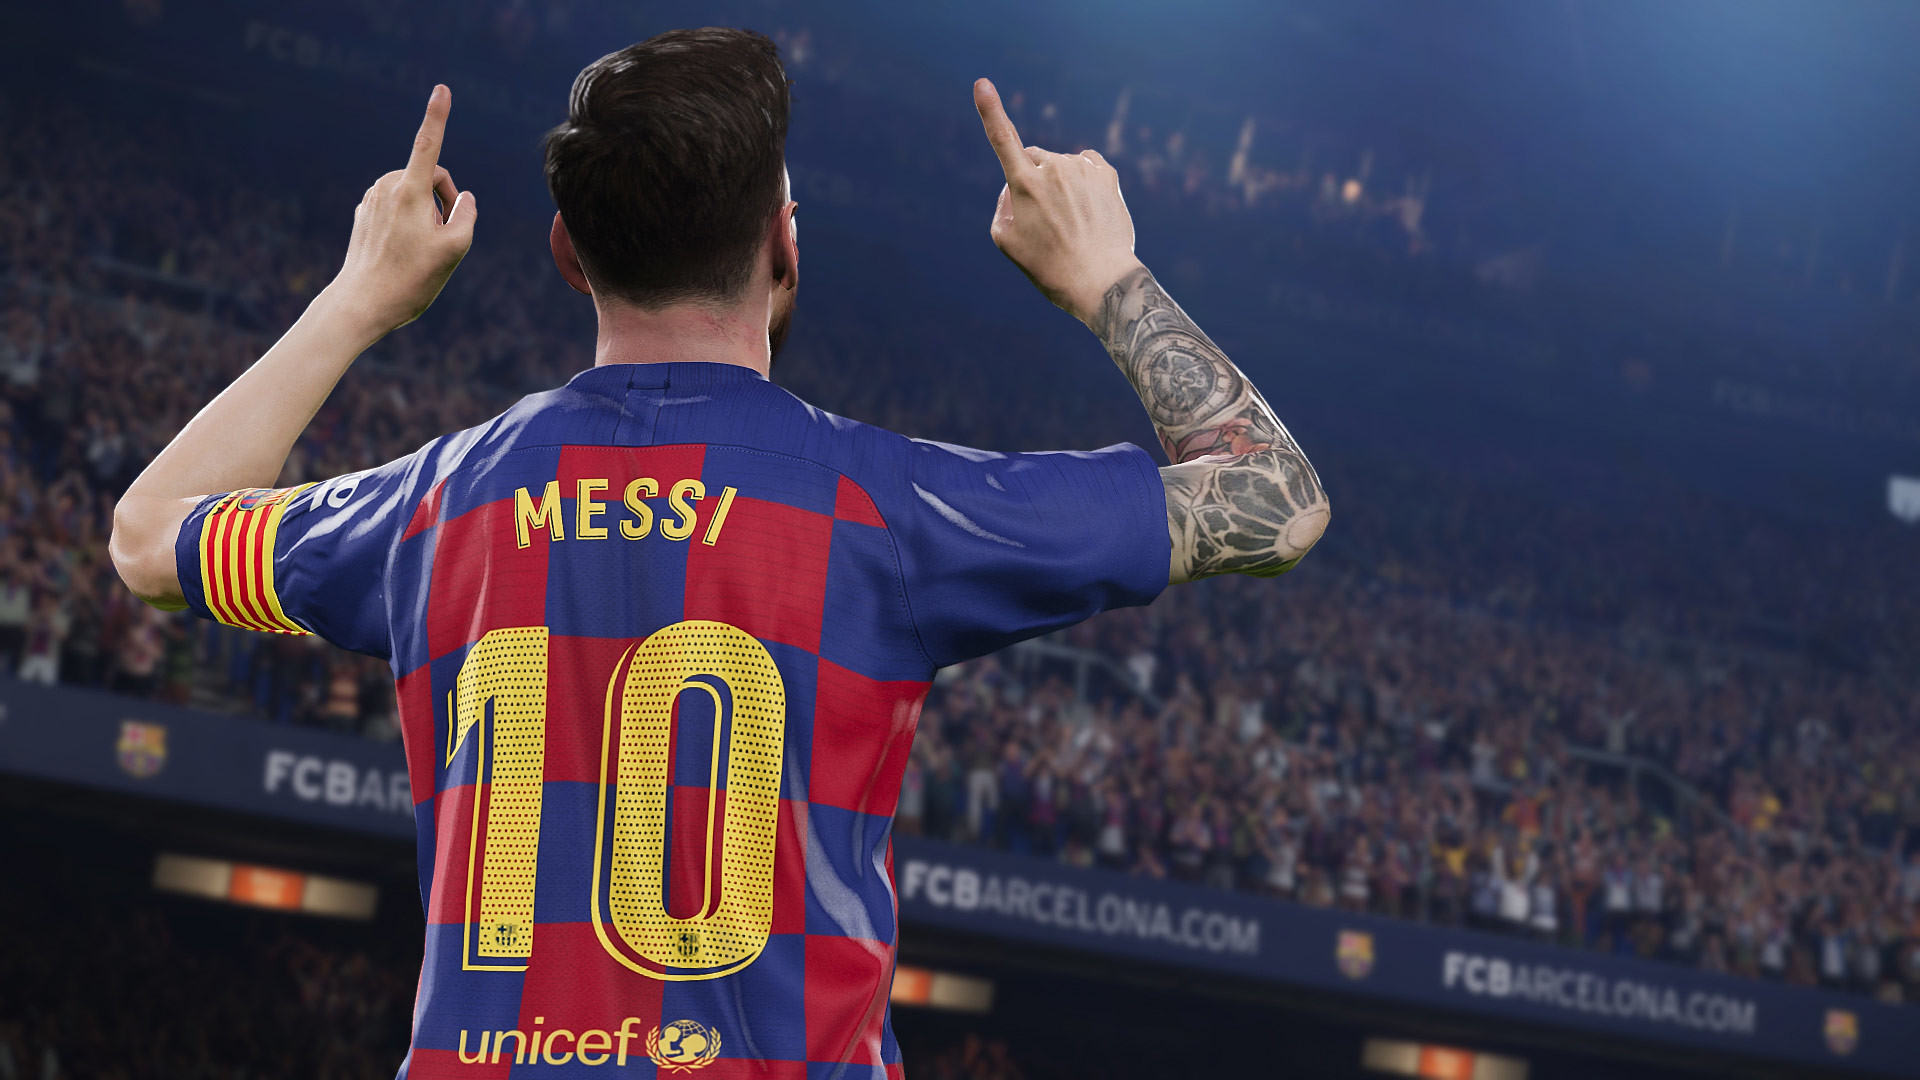 Know more details about PES 2020 game